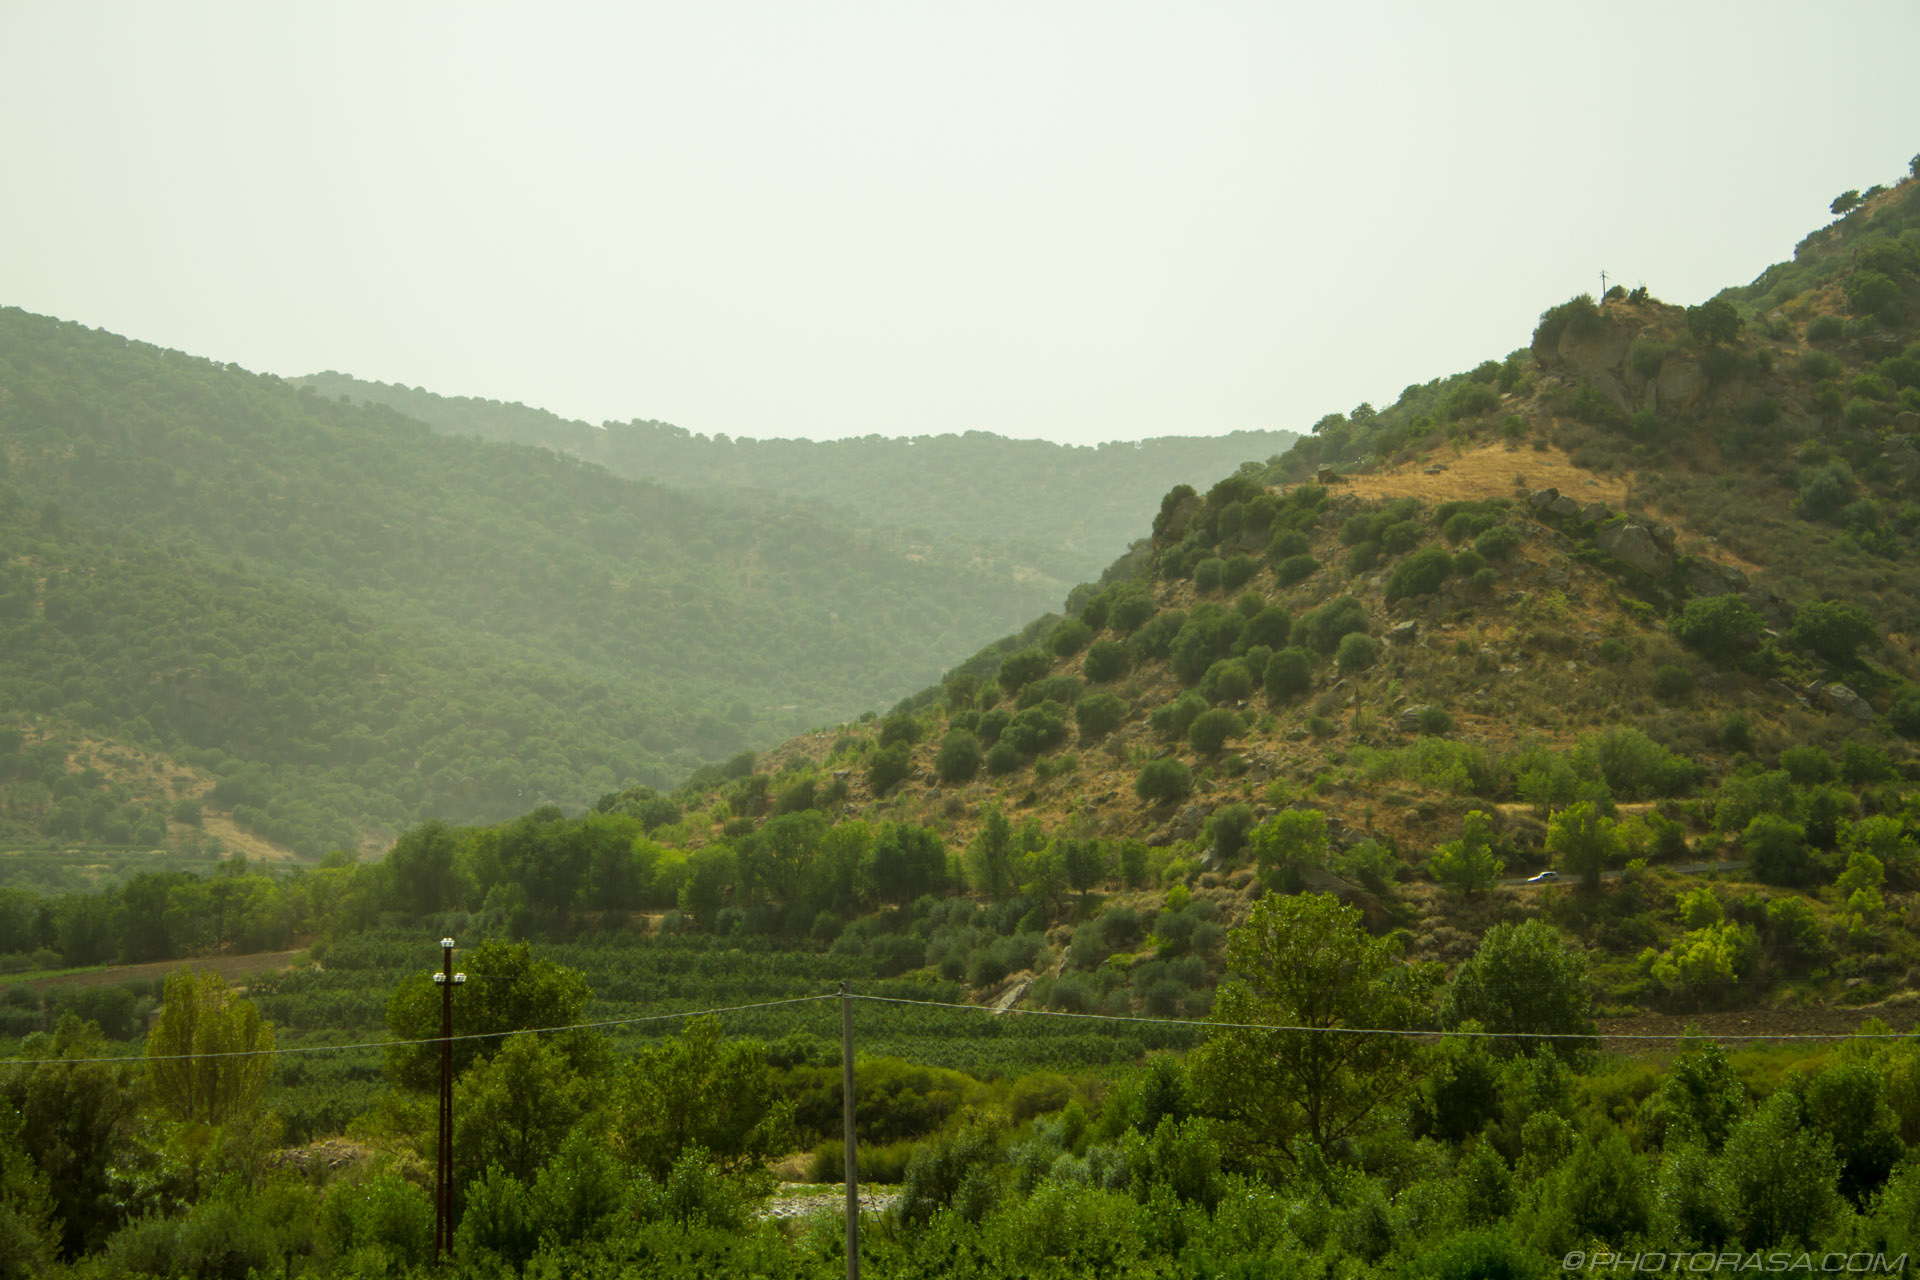 http://photorasa.com/green-valley/